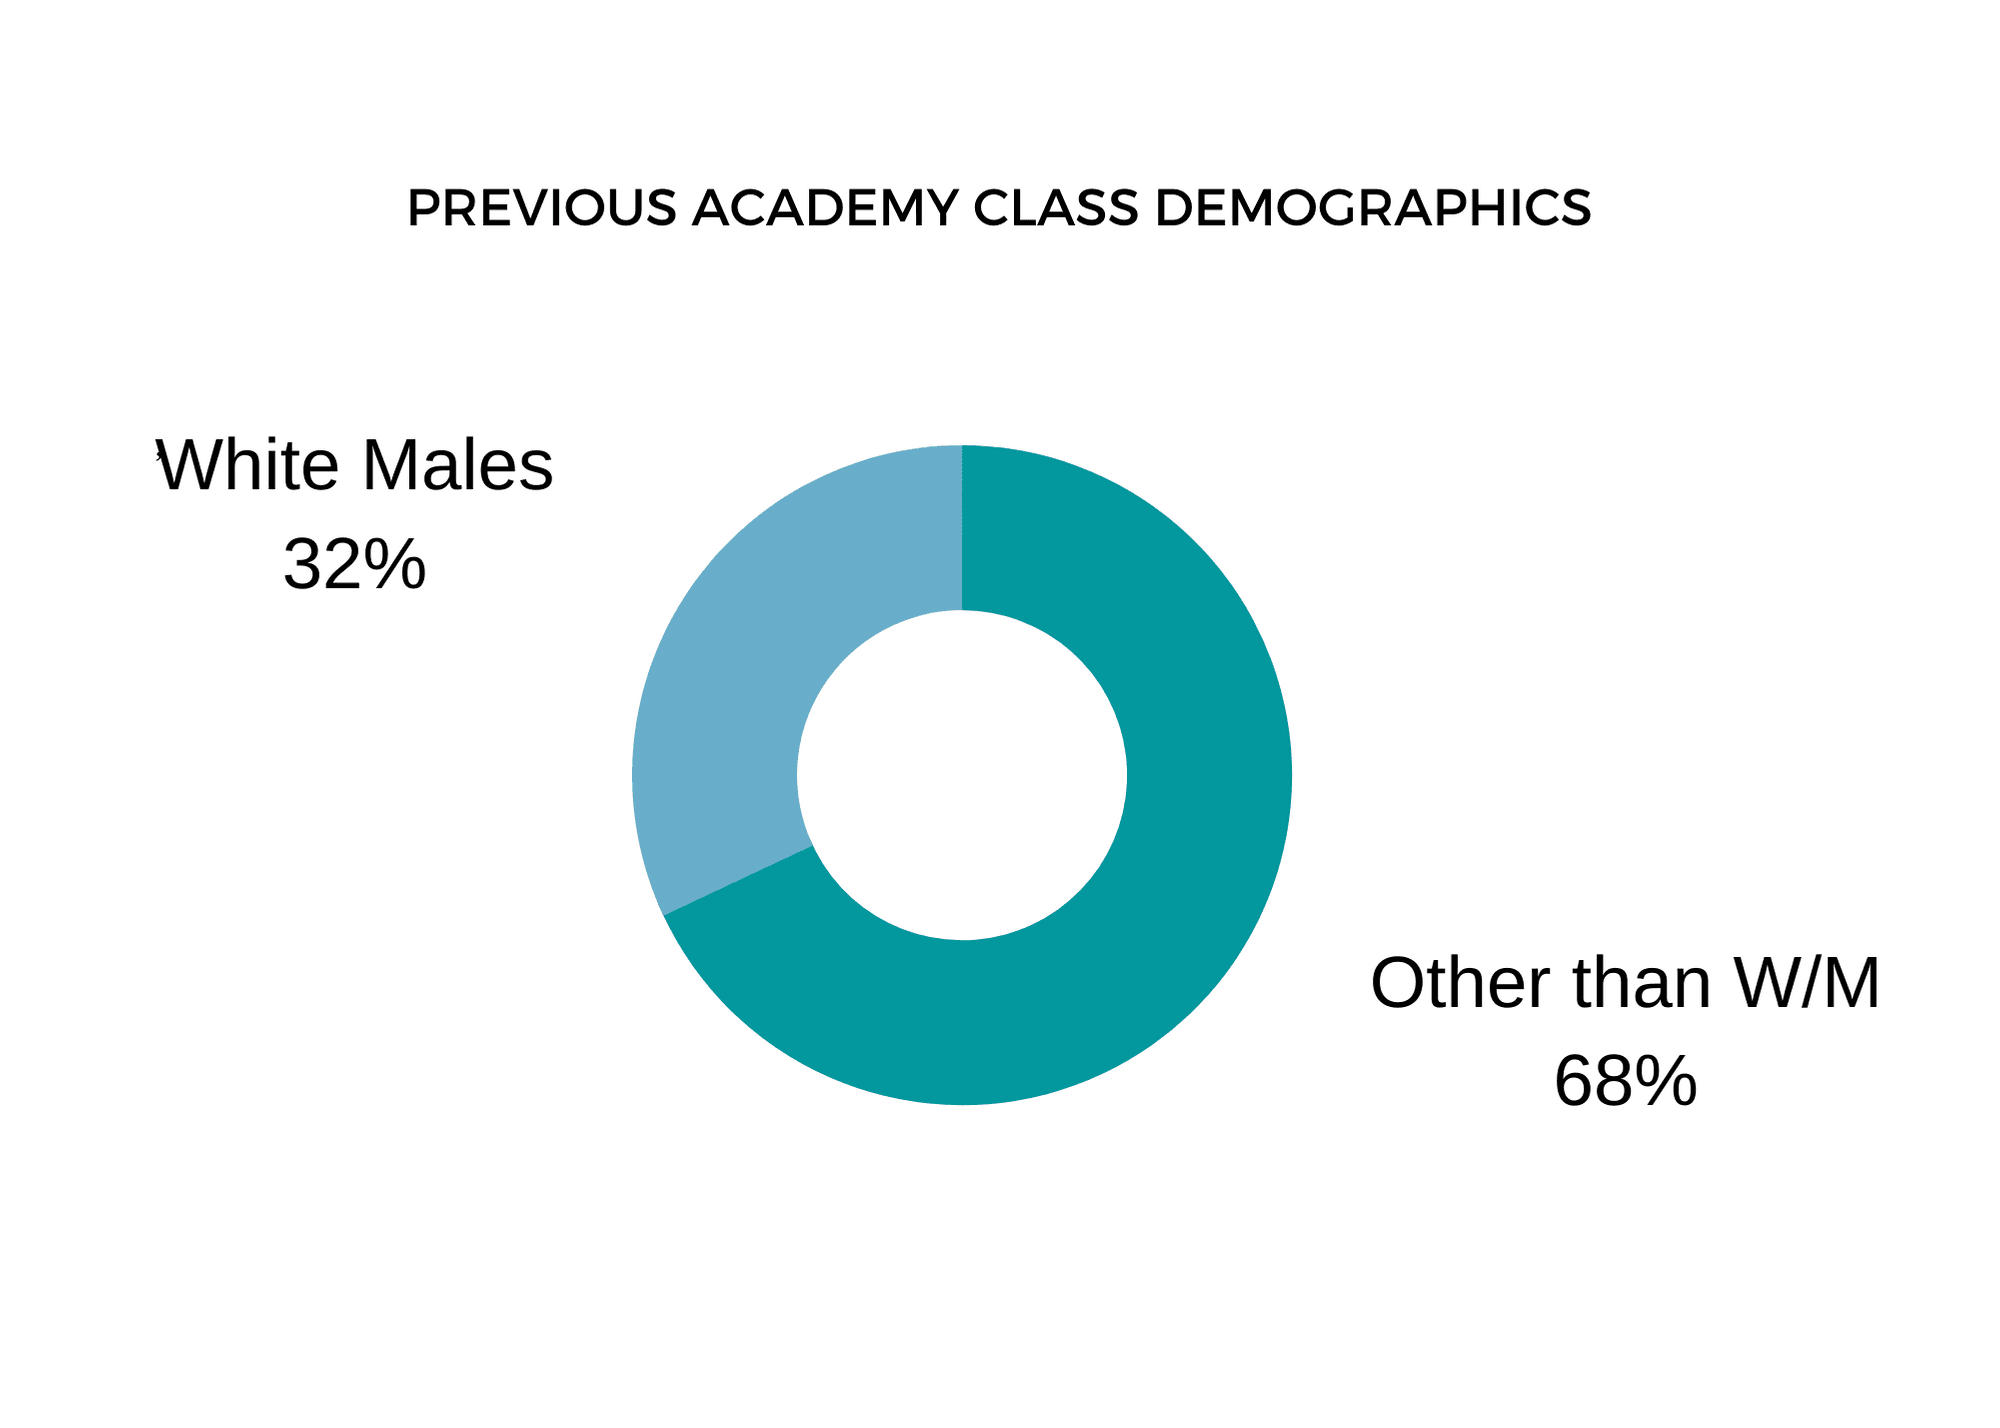 Previous Academy Class Demographics